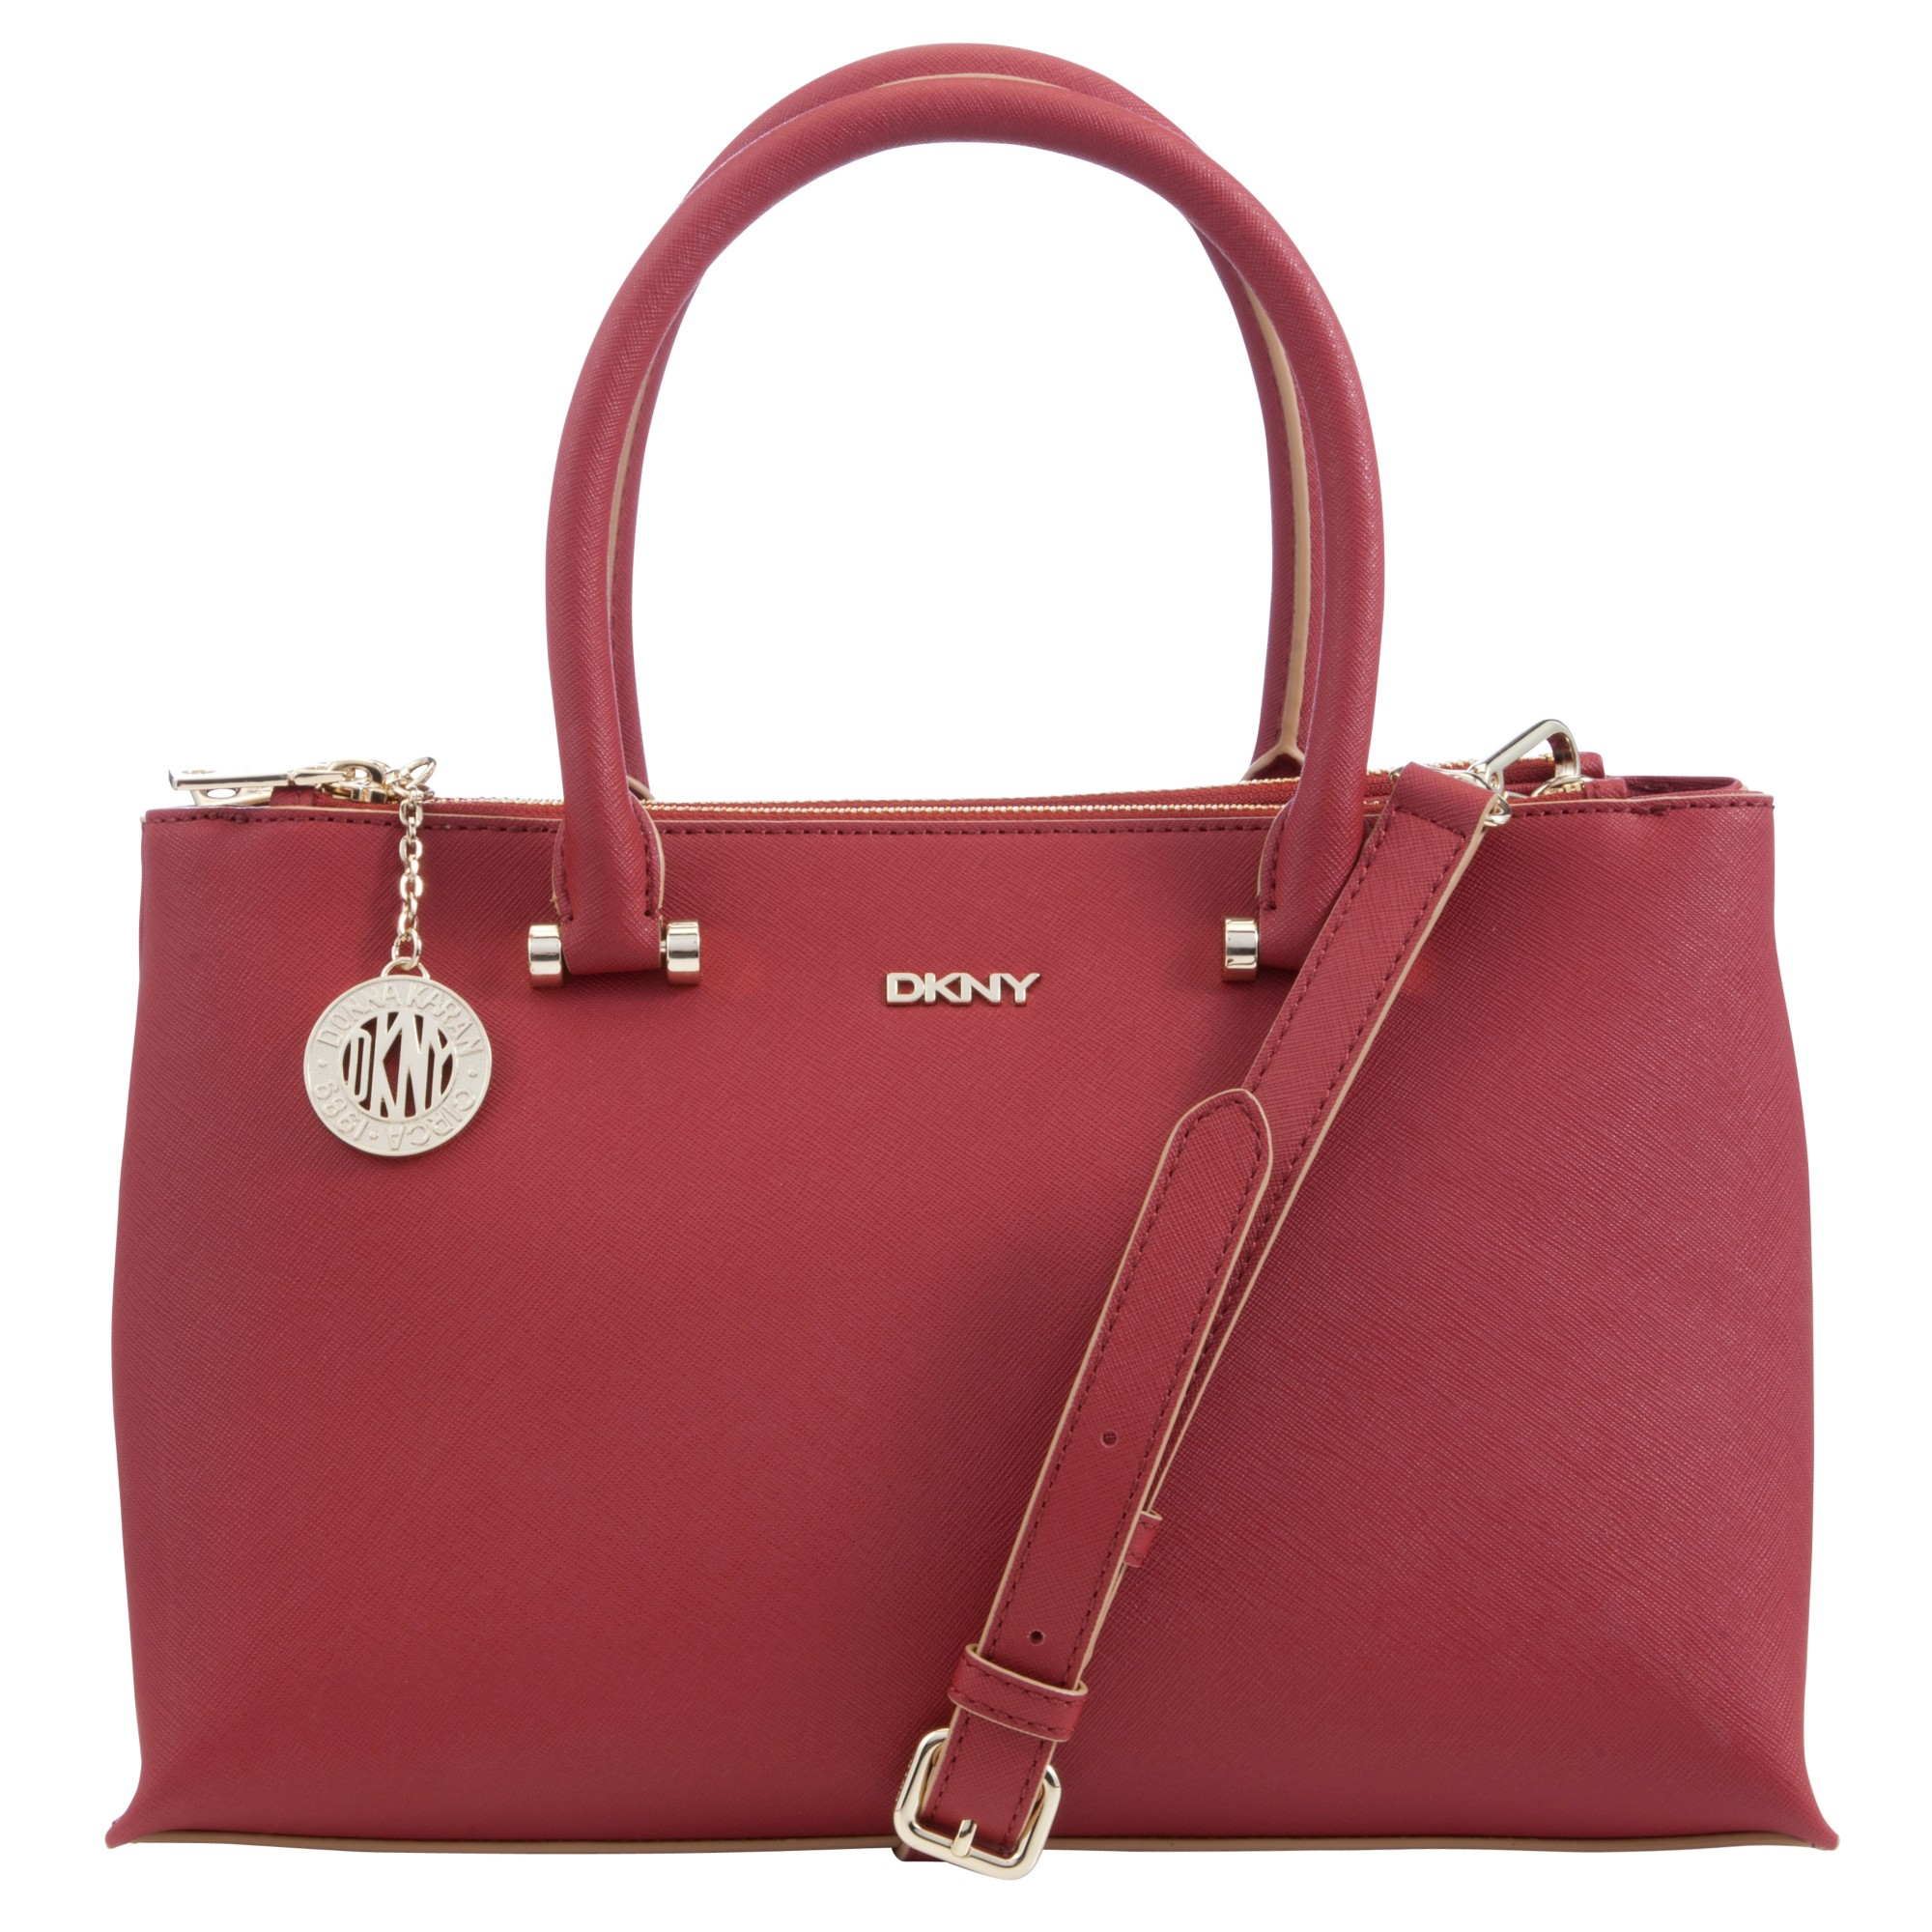 38016d4b649 DKNY Saffiano Leather Medium Zip Top Shopper Bag in Red - Lyst